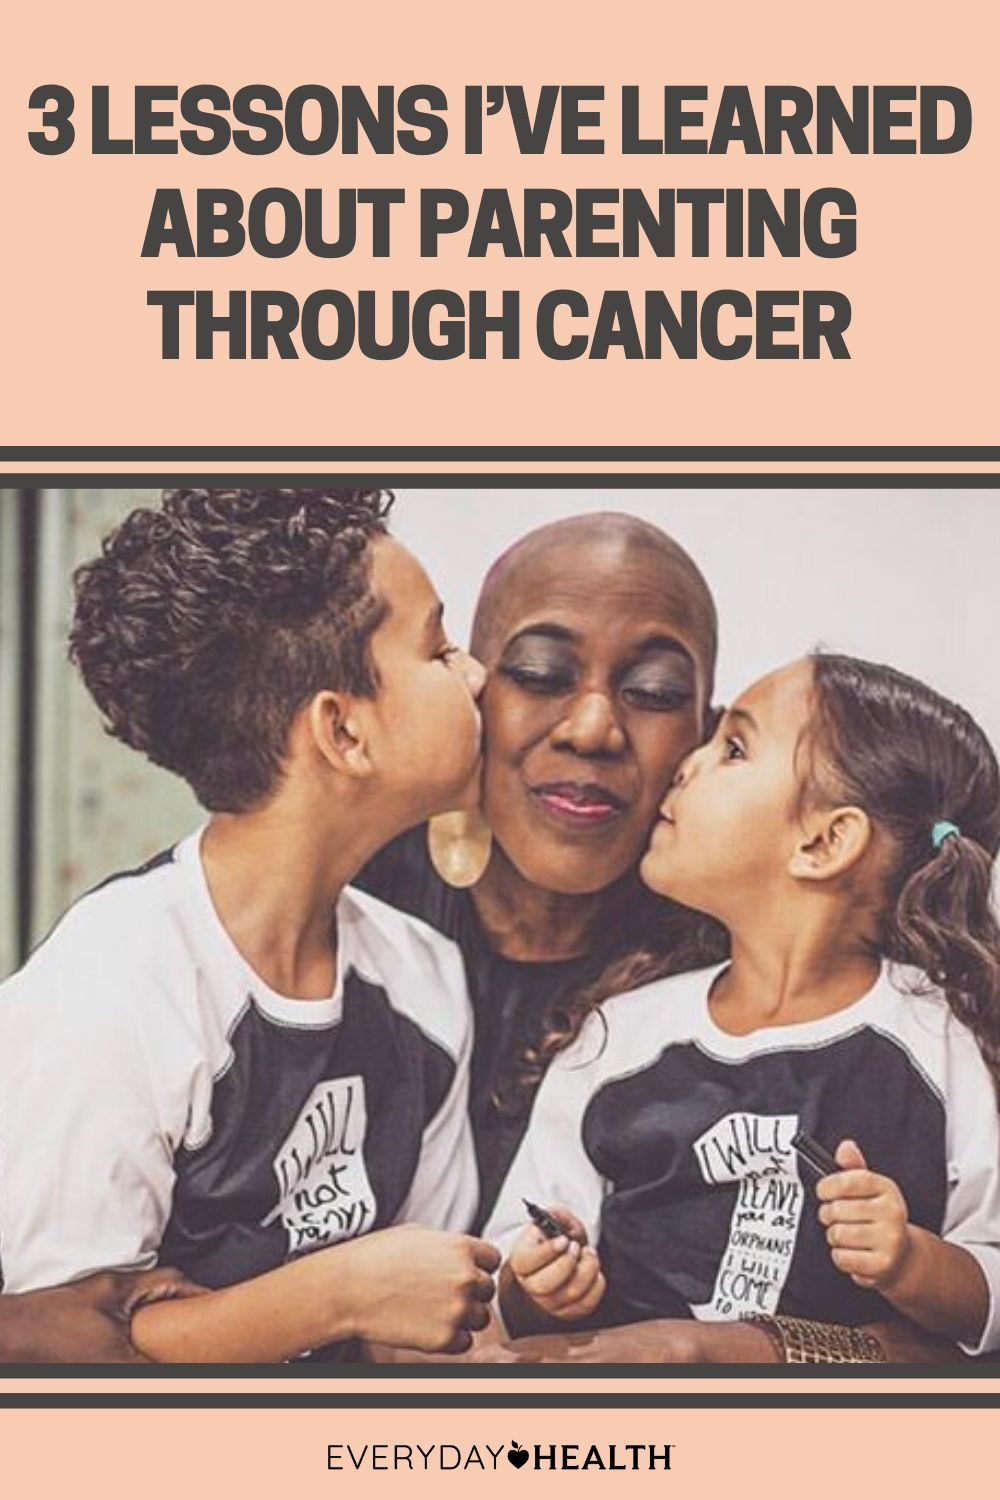 3 Lessons I've Learned About Parenting Through Cancer